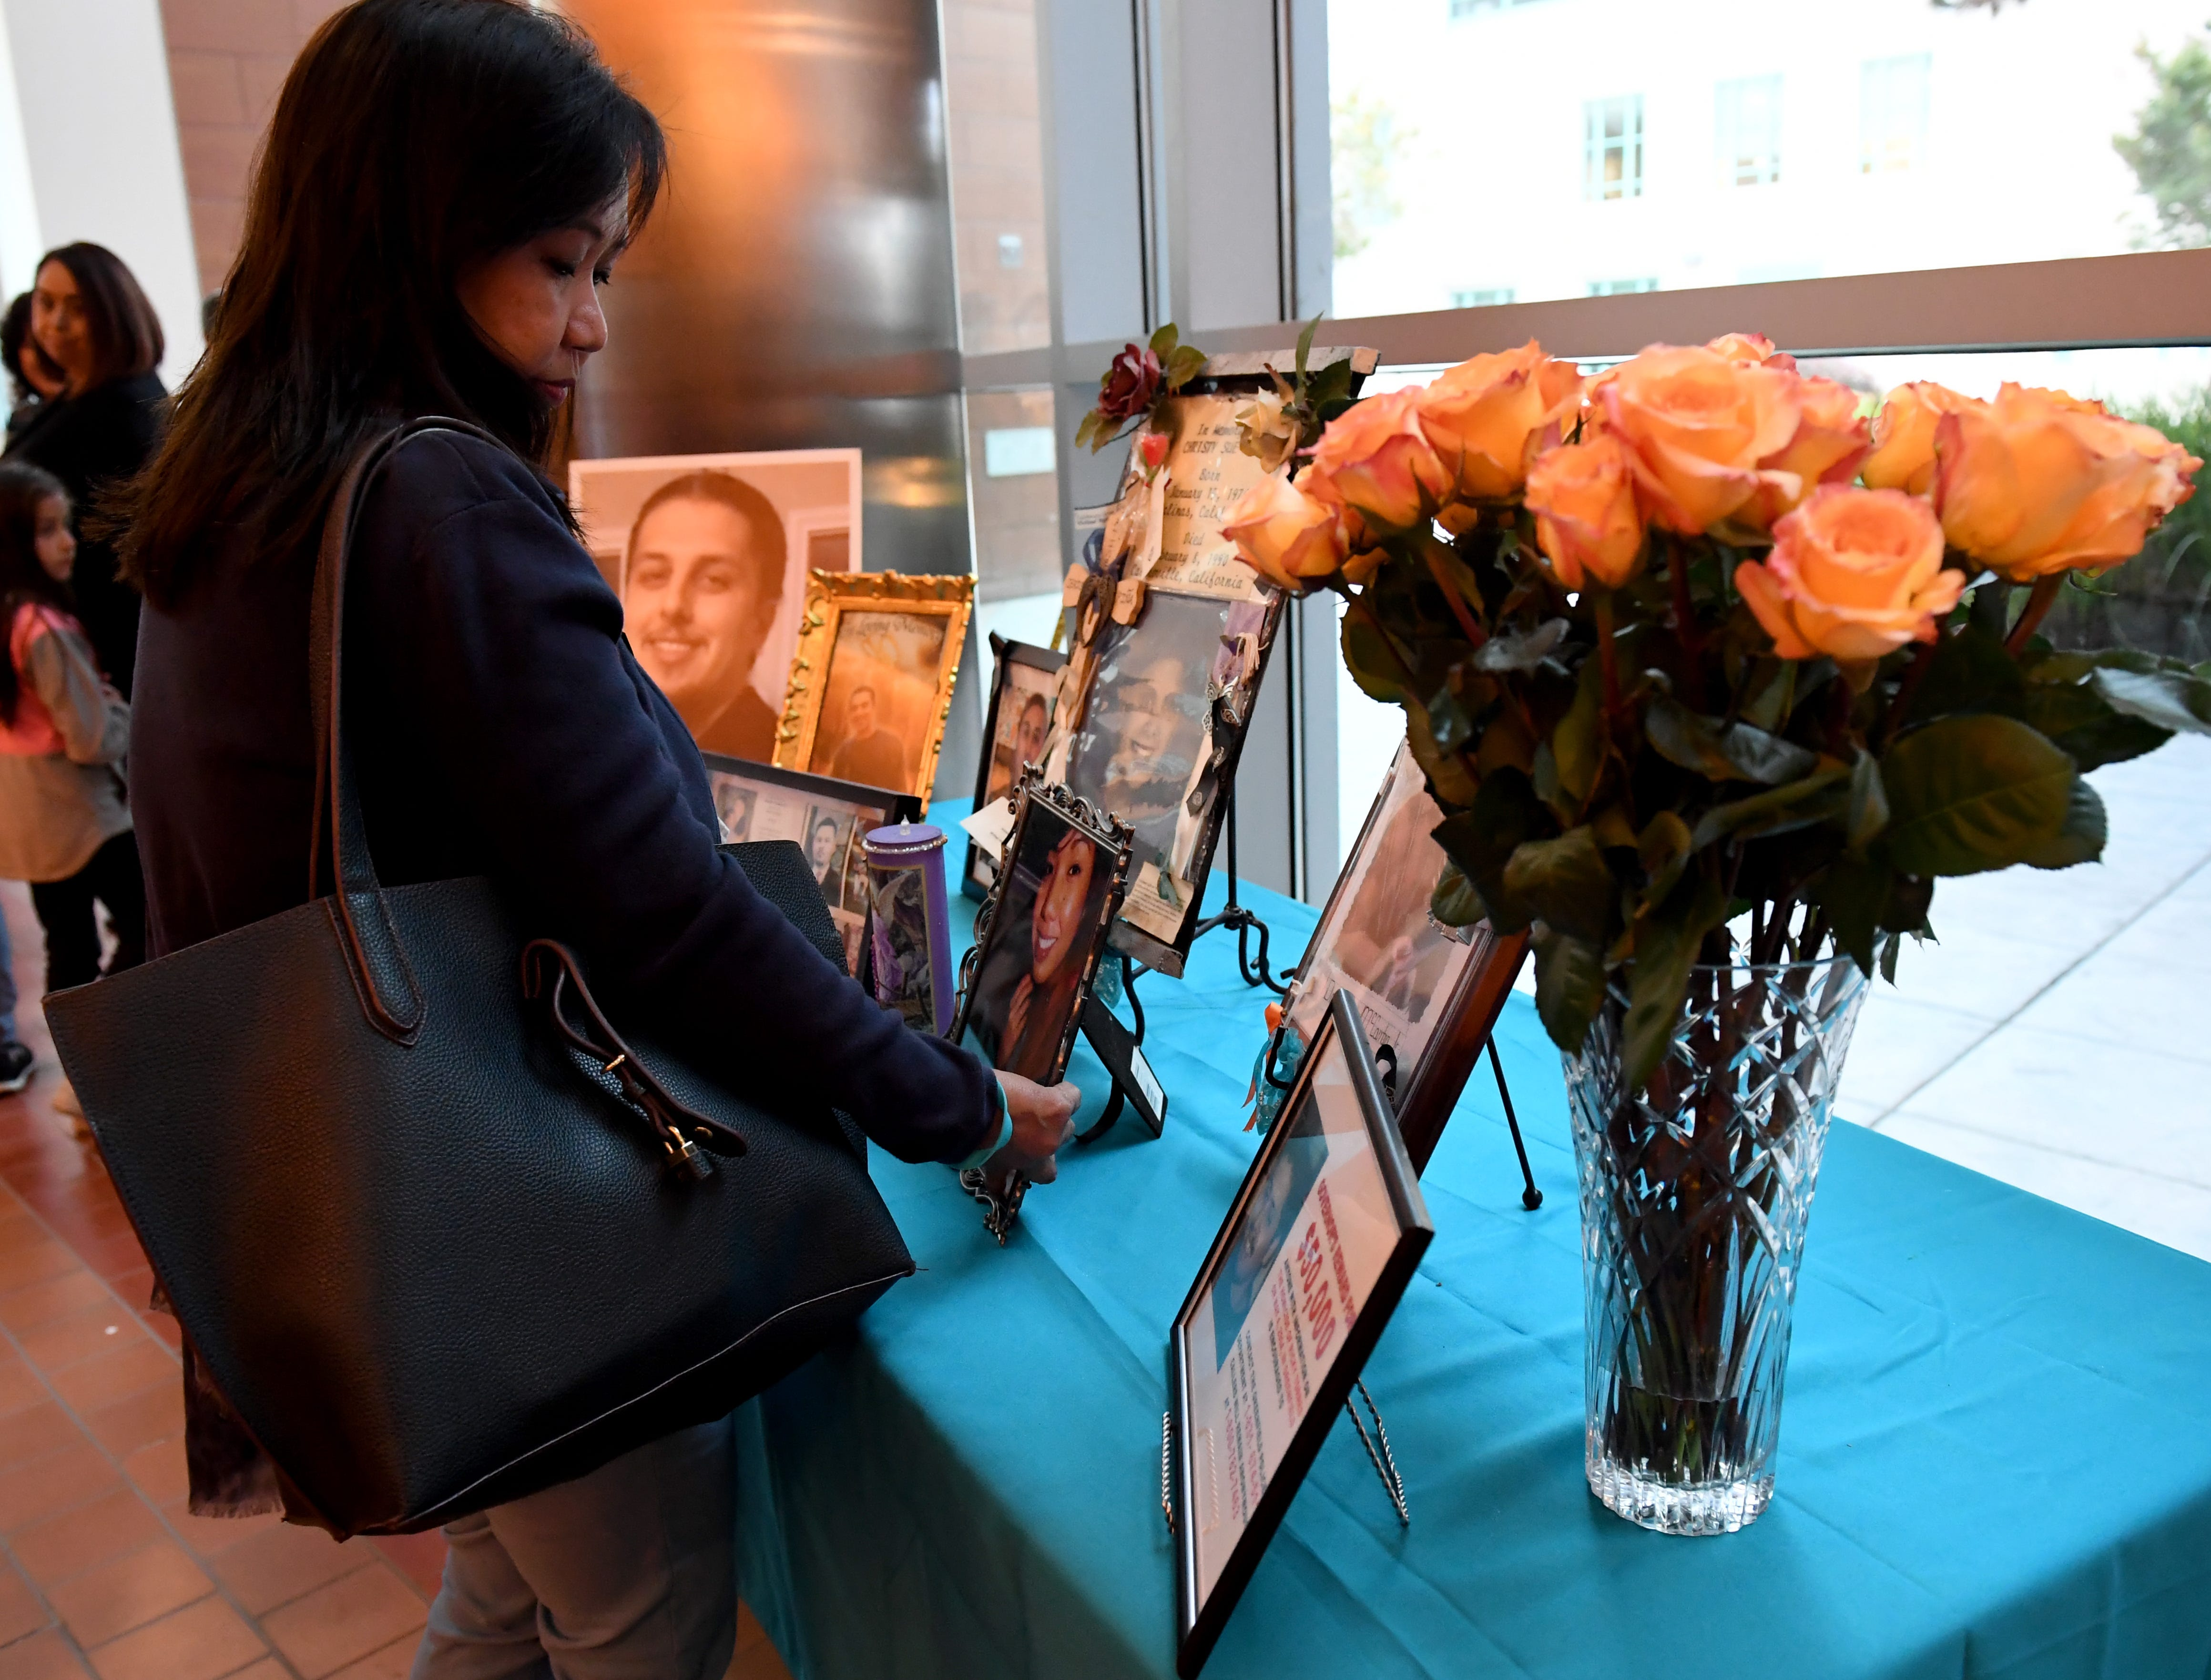 A woman places a photo honoring her loved one on a table at the National Day of Remembrance for Murder Victims ceremony Thursday.